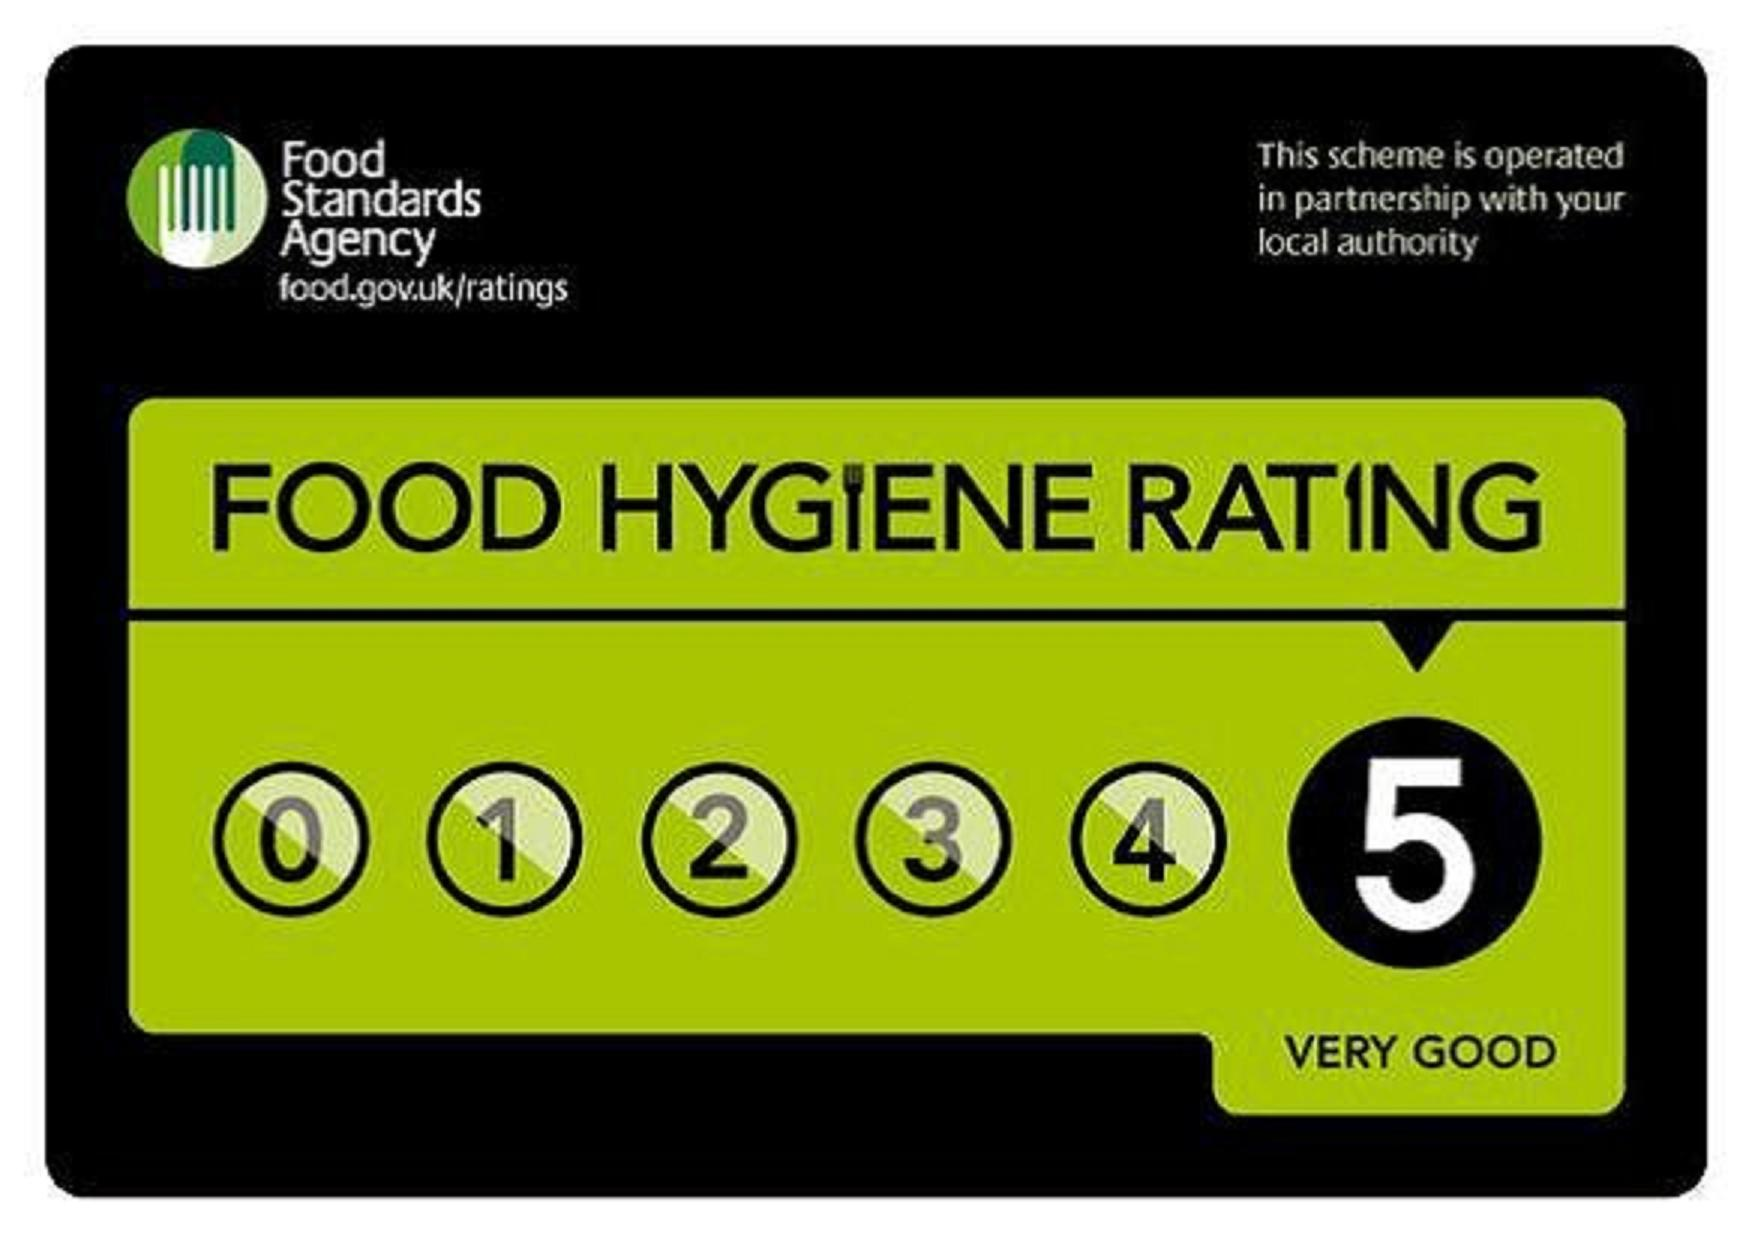 Council offers restaurants tips on how to improve food hygiene ratings